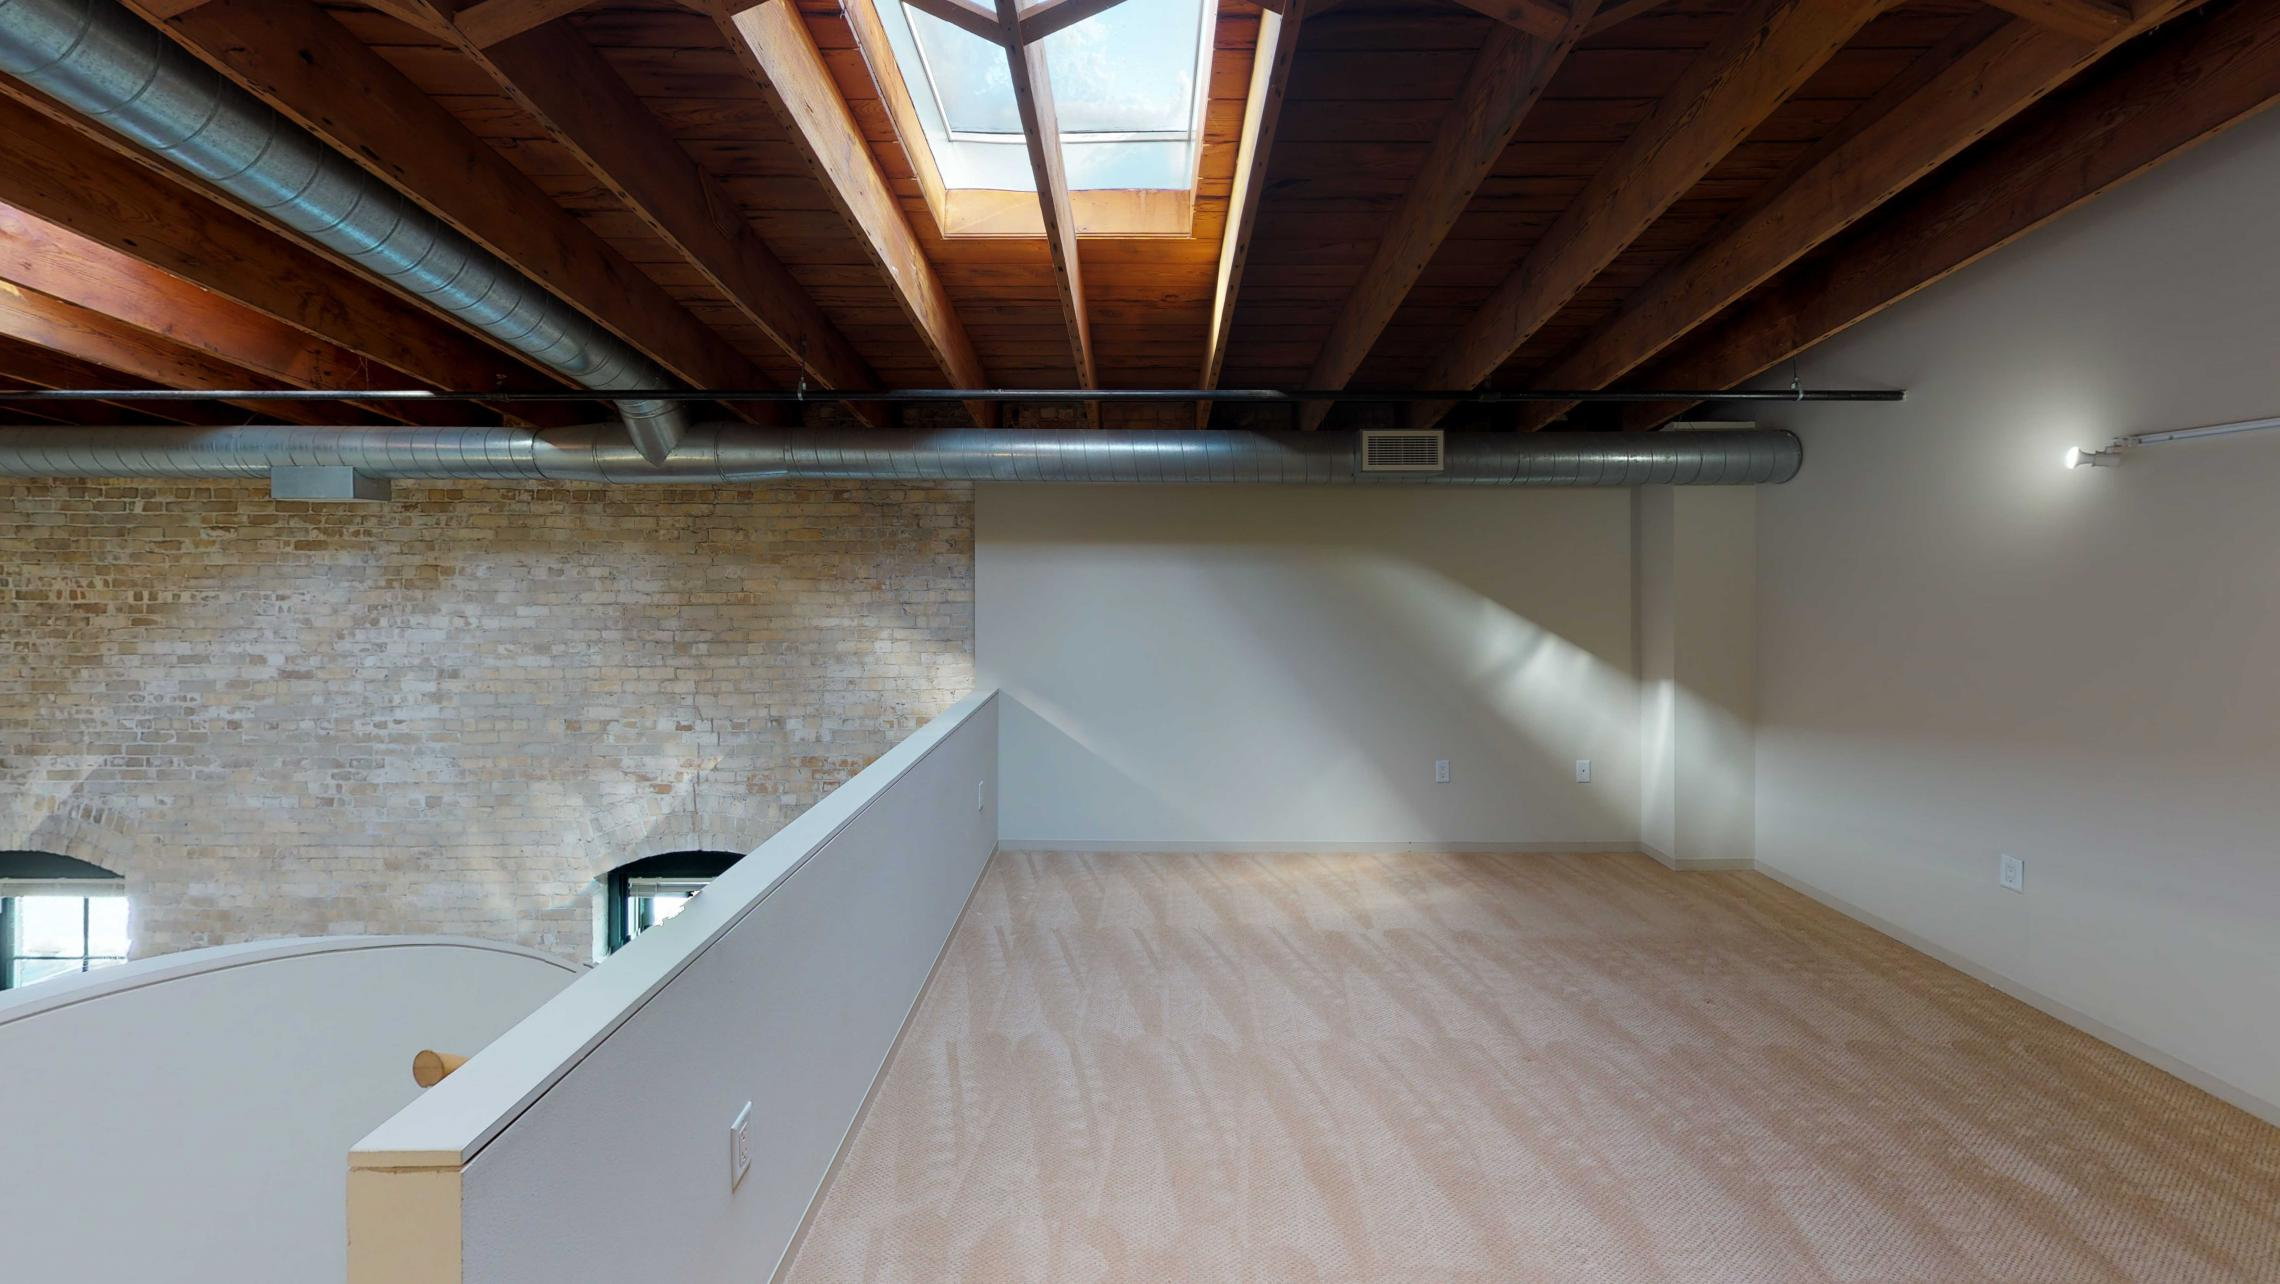 Tobacco-Lofts-E307-Lofted-Two-Bedroom-Downtown-Madison-Luxury-Apartments-Yards-Exposures-Skylight.jpg